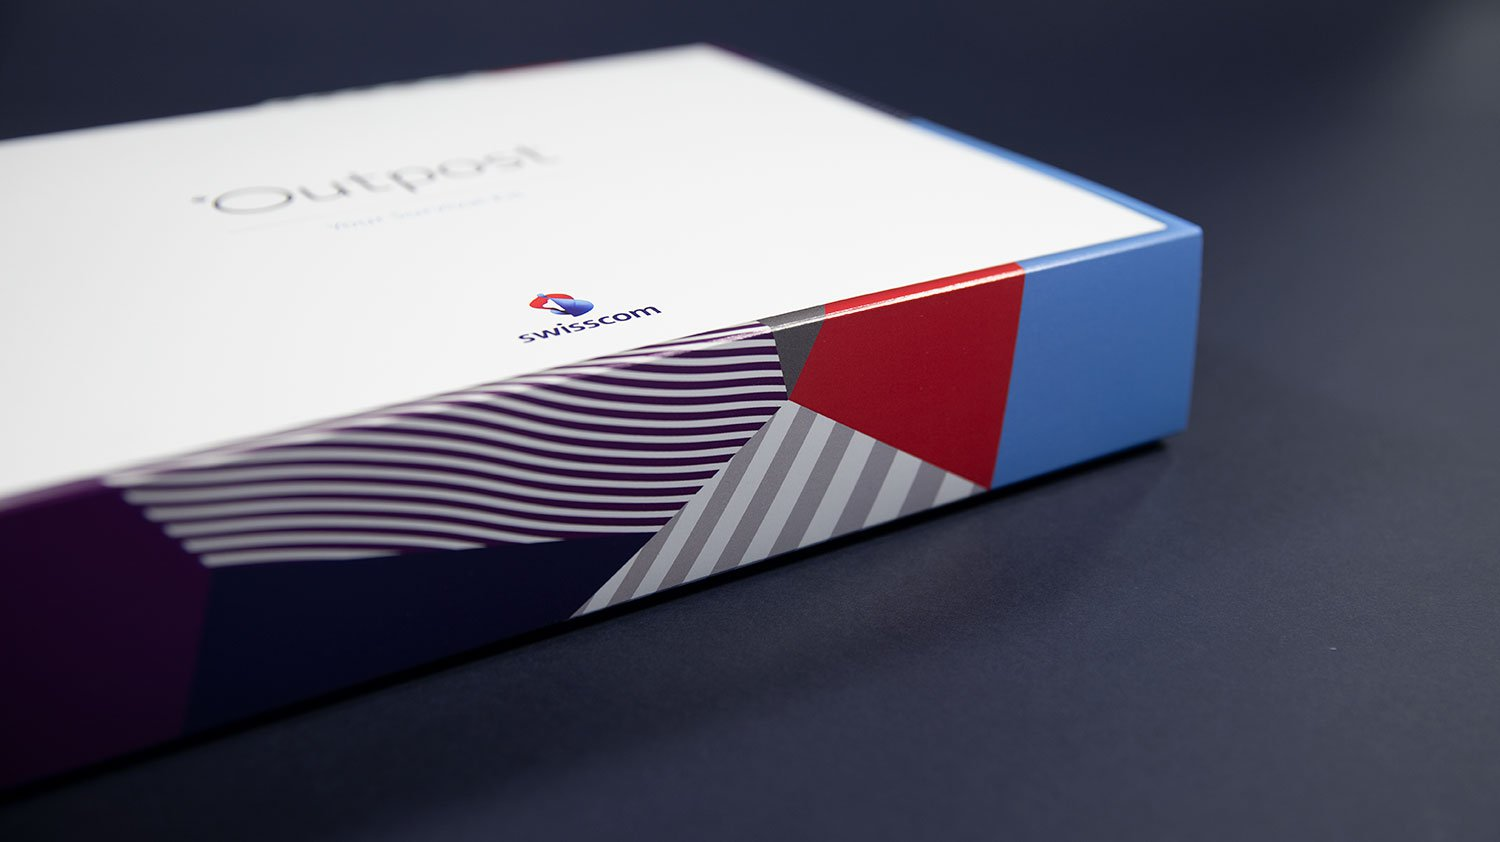 Swisscom Outpost box design